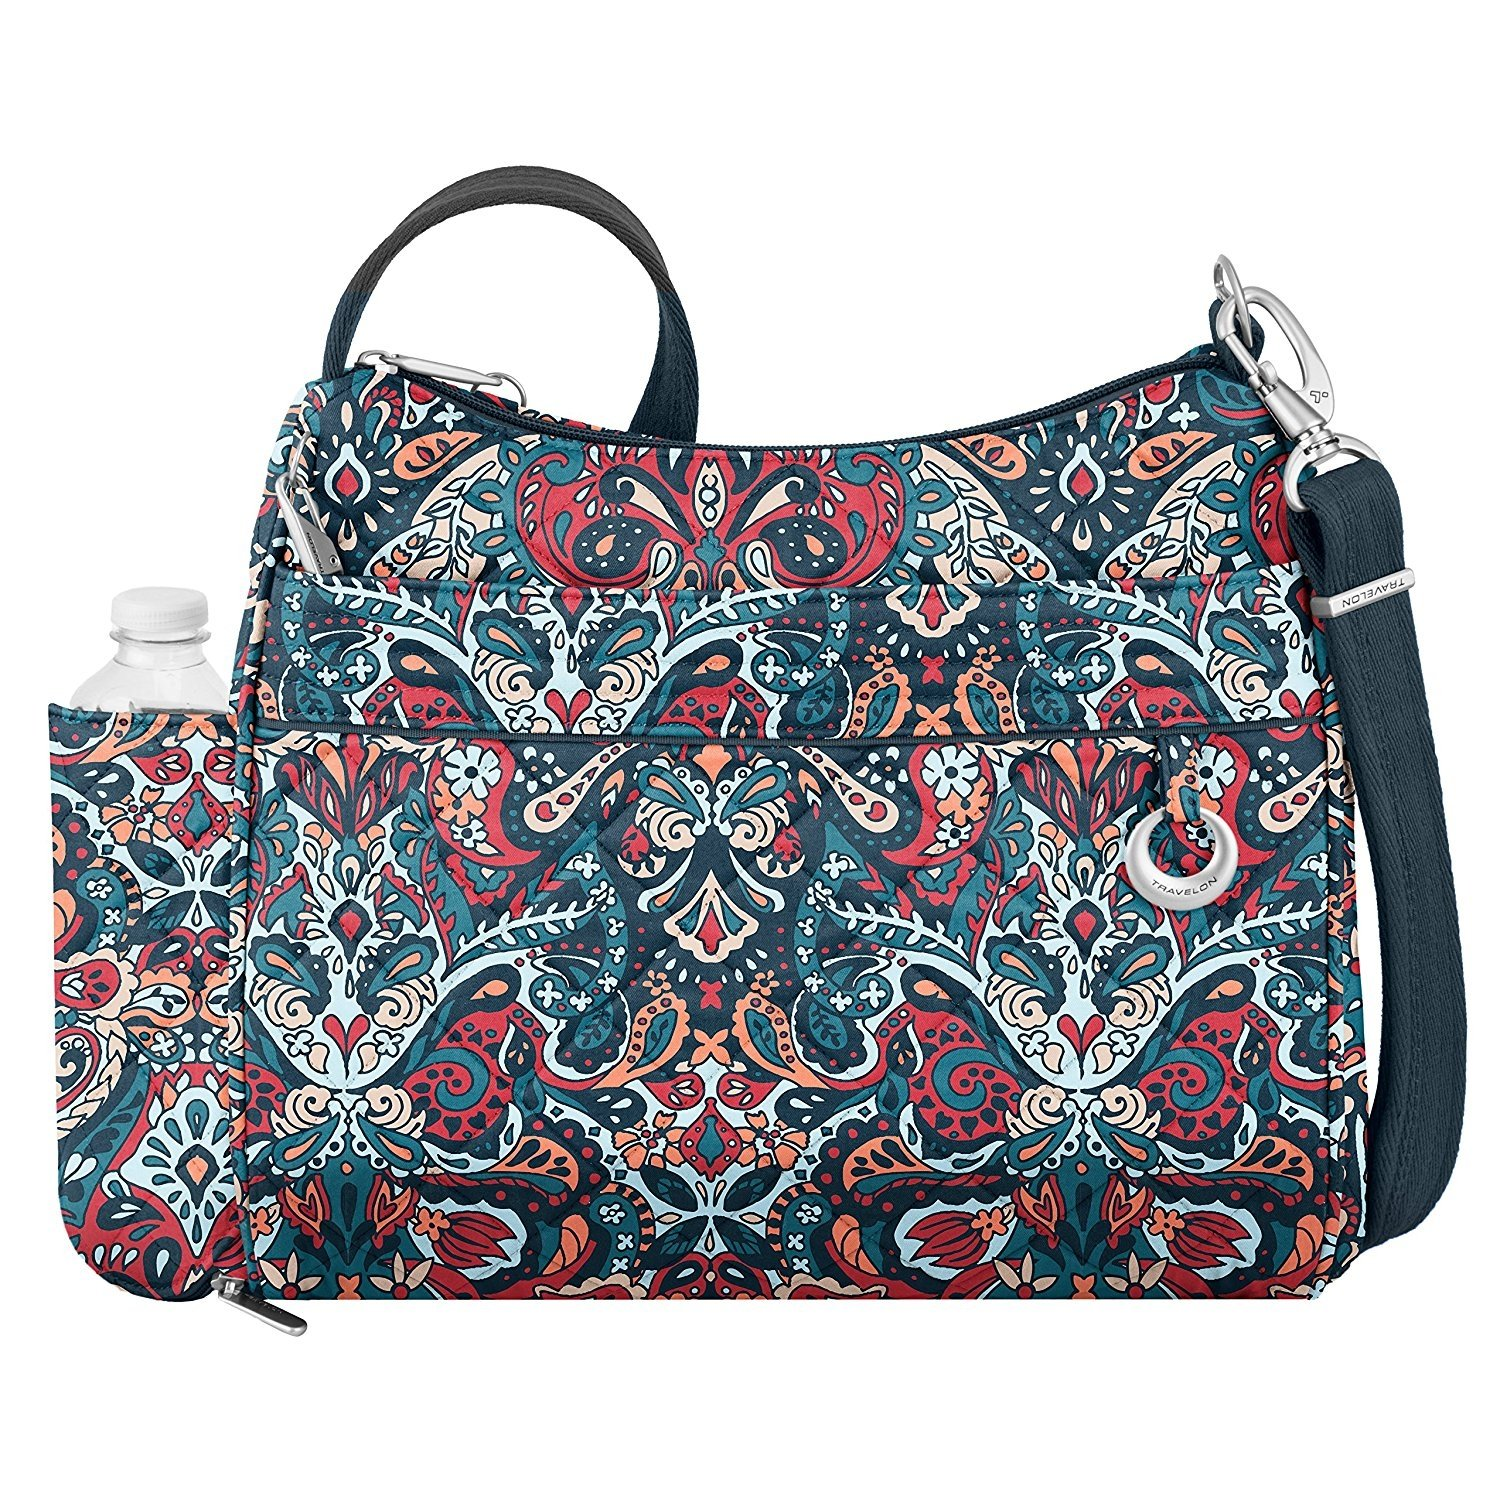 "Women's Travelon Anti-Theft Boho Square Crossbody  12"" x 11.25"" x 4"""